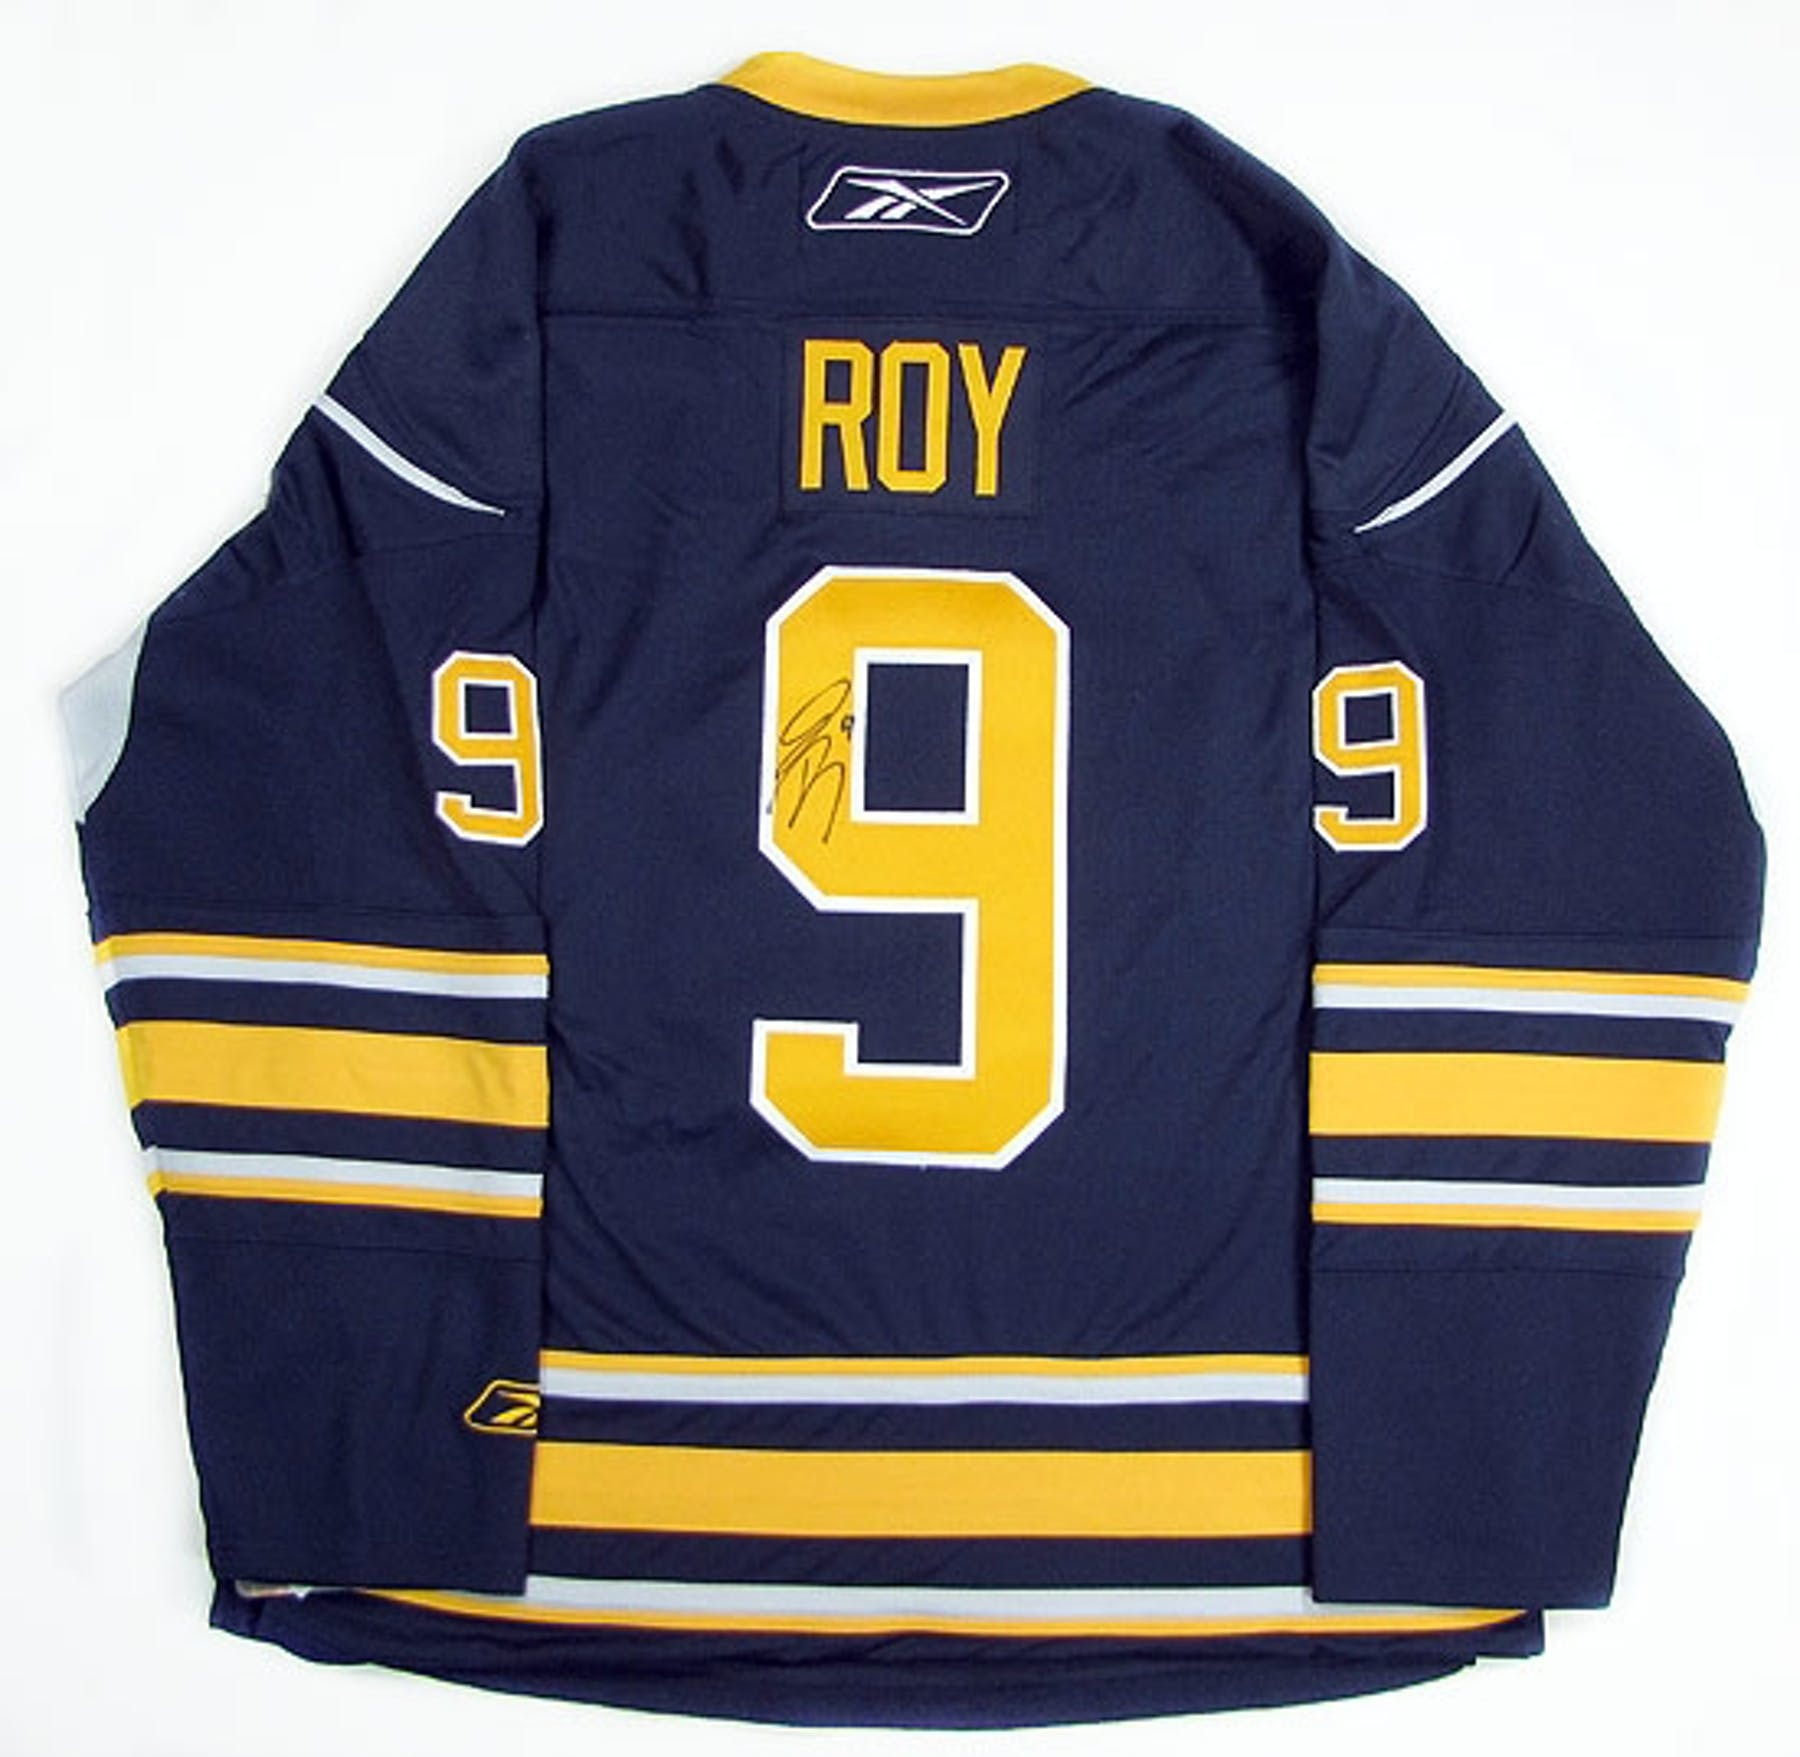 97f9715e8 Derek Roy Autographed Buffalo Sabres Blue Hockey Jersey (Home)